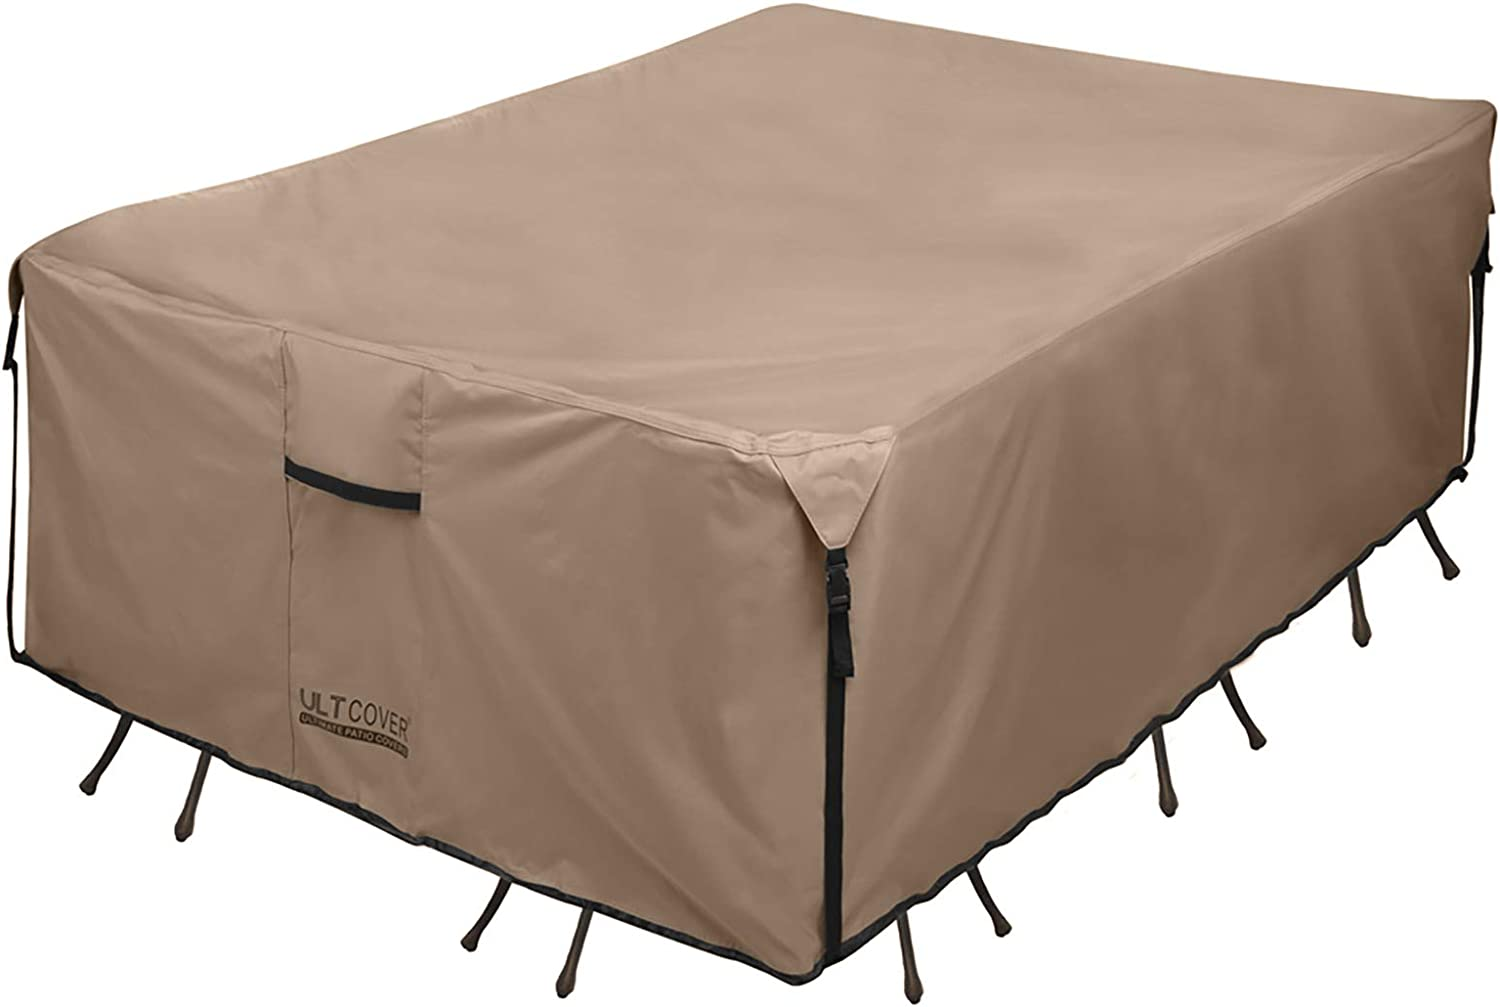 600D Tough Canvas Waterproof Outdoor Dining Table and Chairs General Purpose Furniture Cover Size 136L x 74W x 28H inch ULTCOVER Rectangular Patio Heavy Duty Table Cover